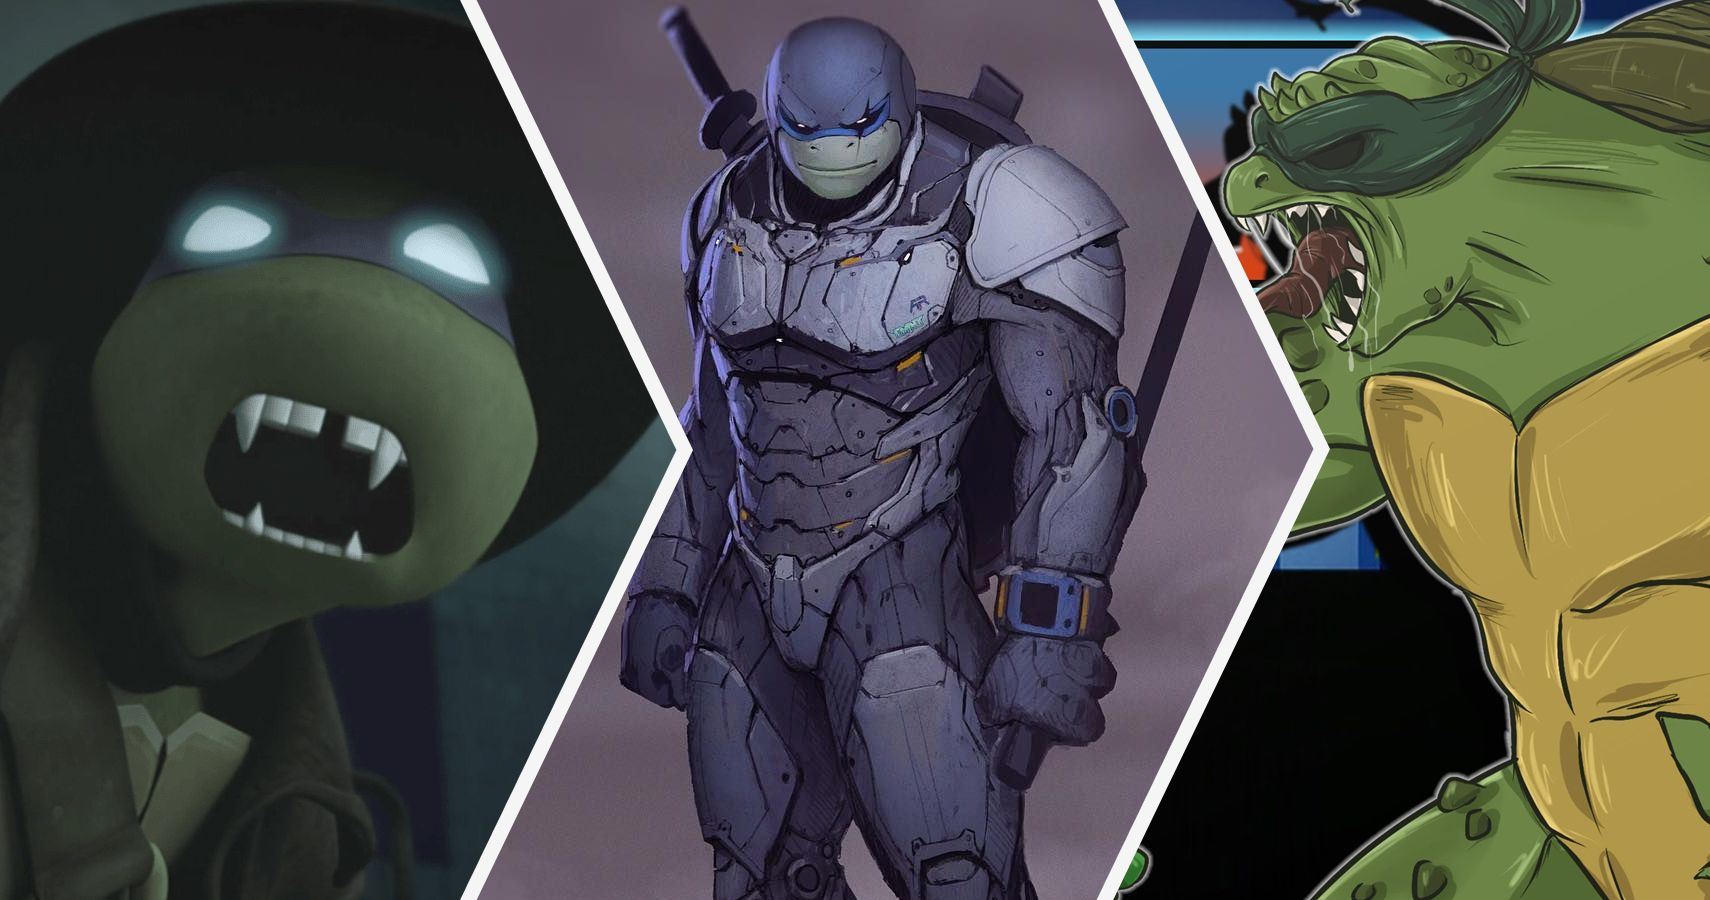 20 Crazy Details About The Teenage Mutant Ninja Turtles Bodies